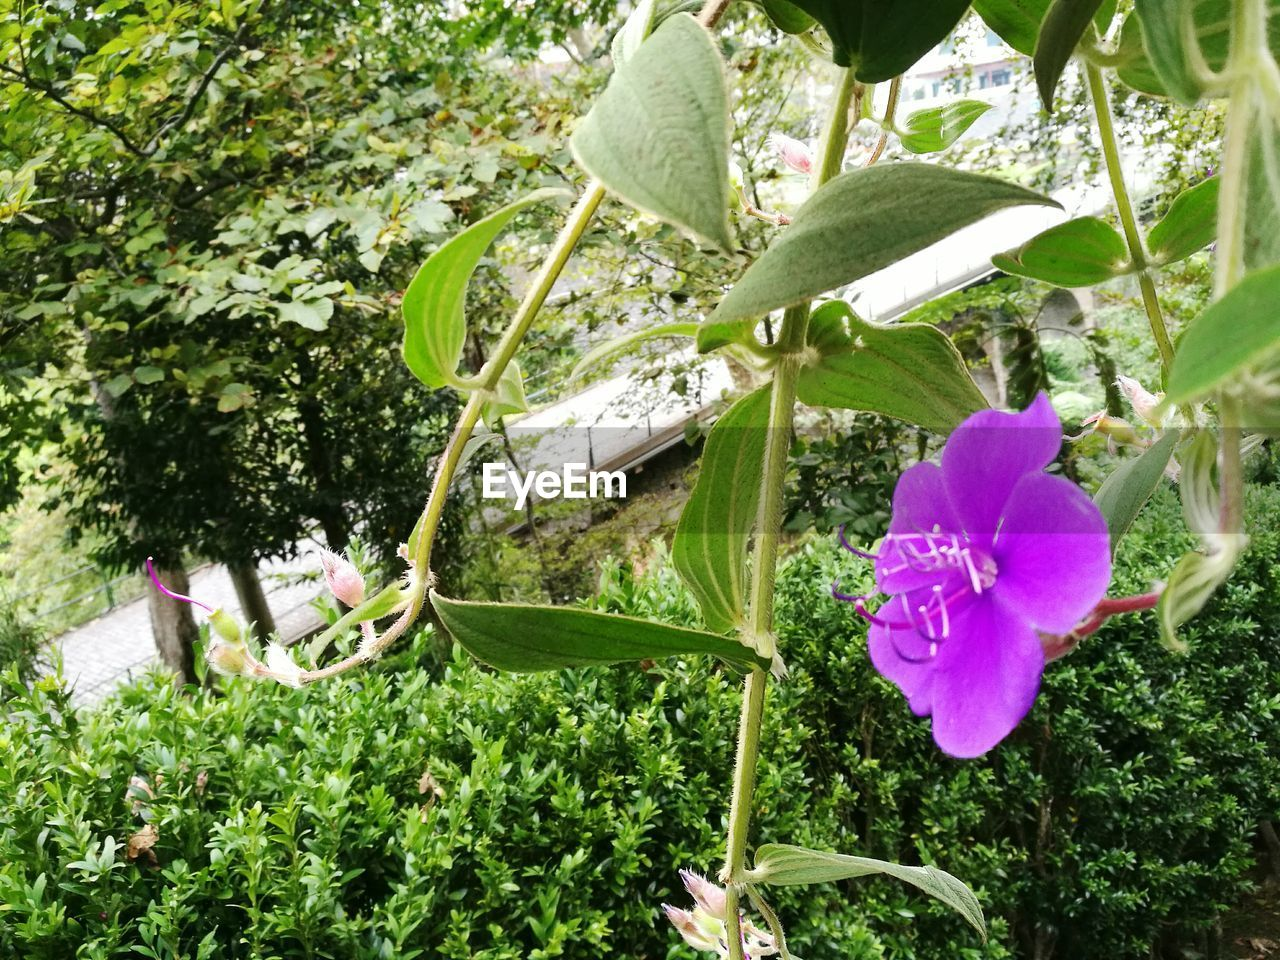 flower, growth, plant, nature, leaf, beauty in nature, freshness, petal, day, outdoors, fragility, no people, green color, blooming, flower head, tree, close-up